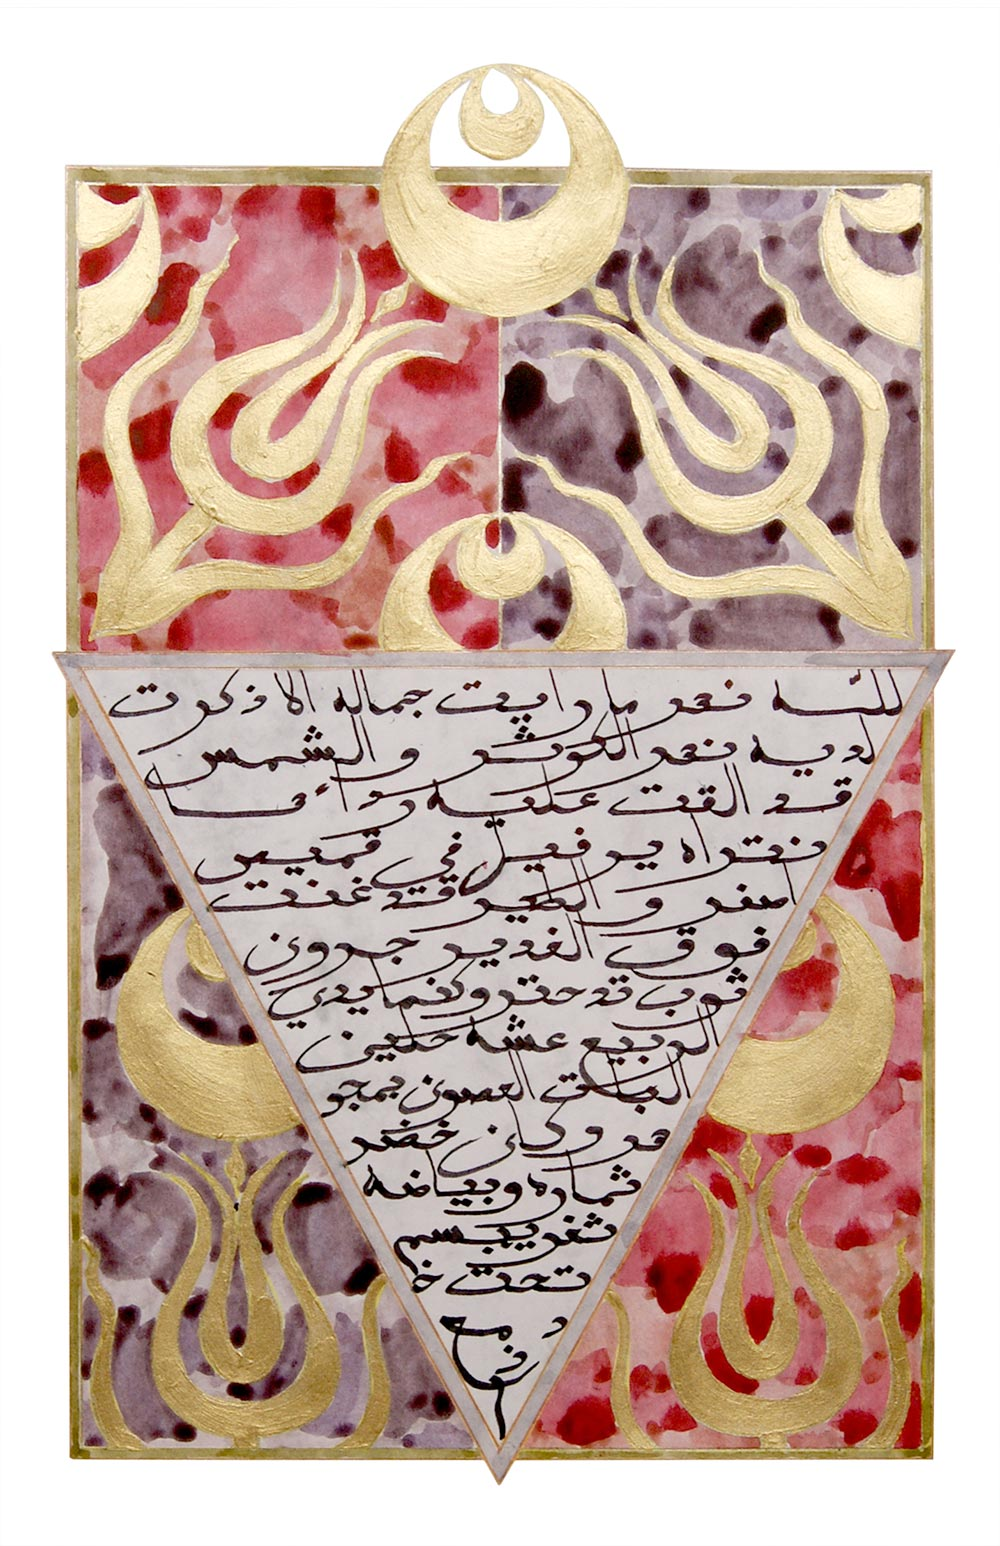 Untitled   Watercolour, gold paint and Indian ink on paper 29.6 x 21 cm 2010